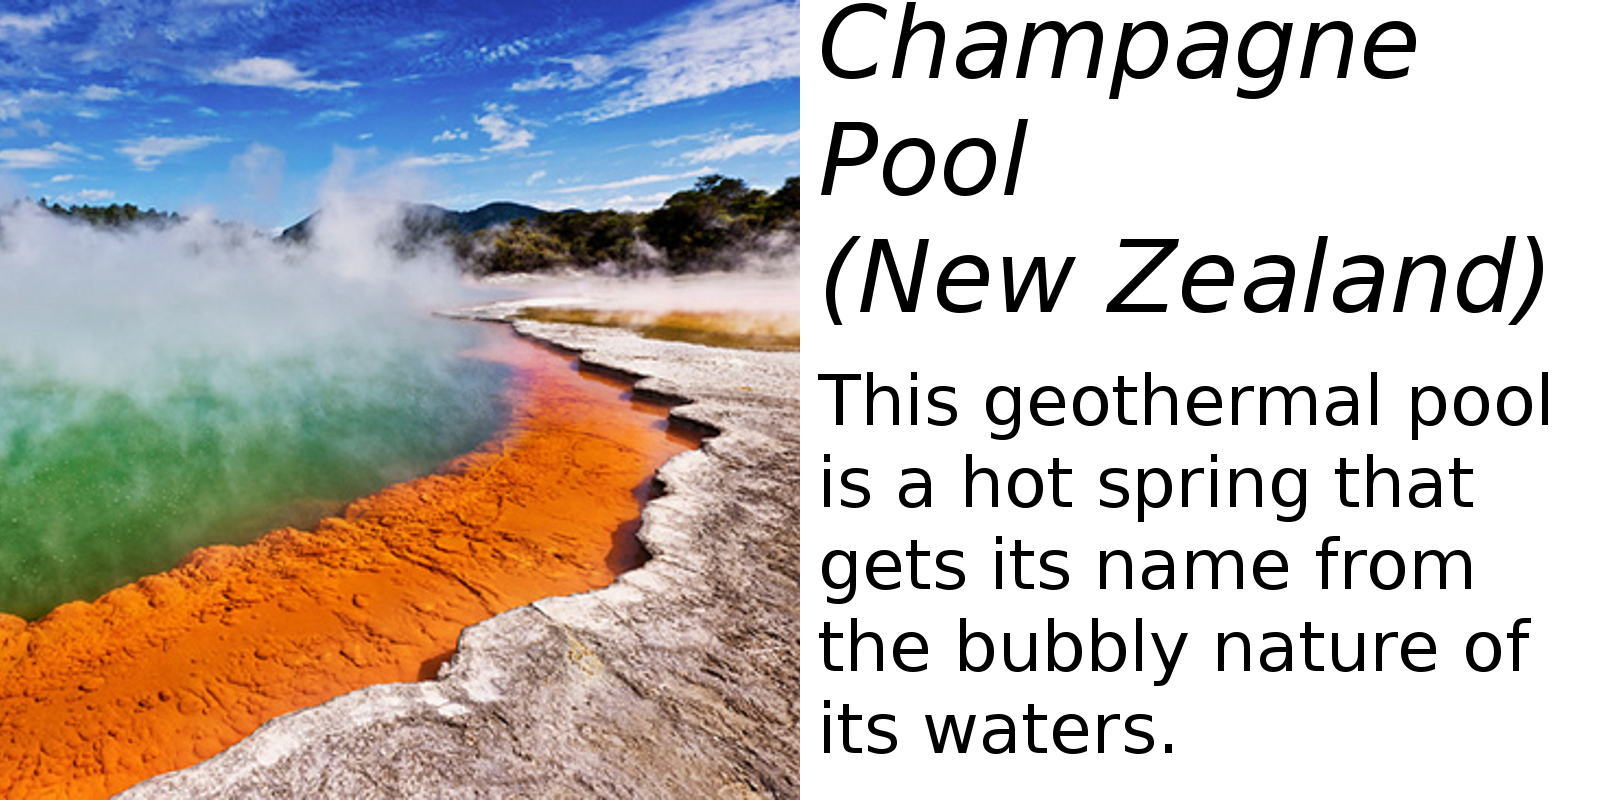 Champagne Pool, New Zealand (description) #2